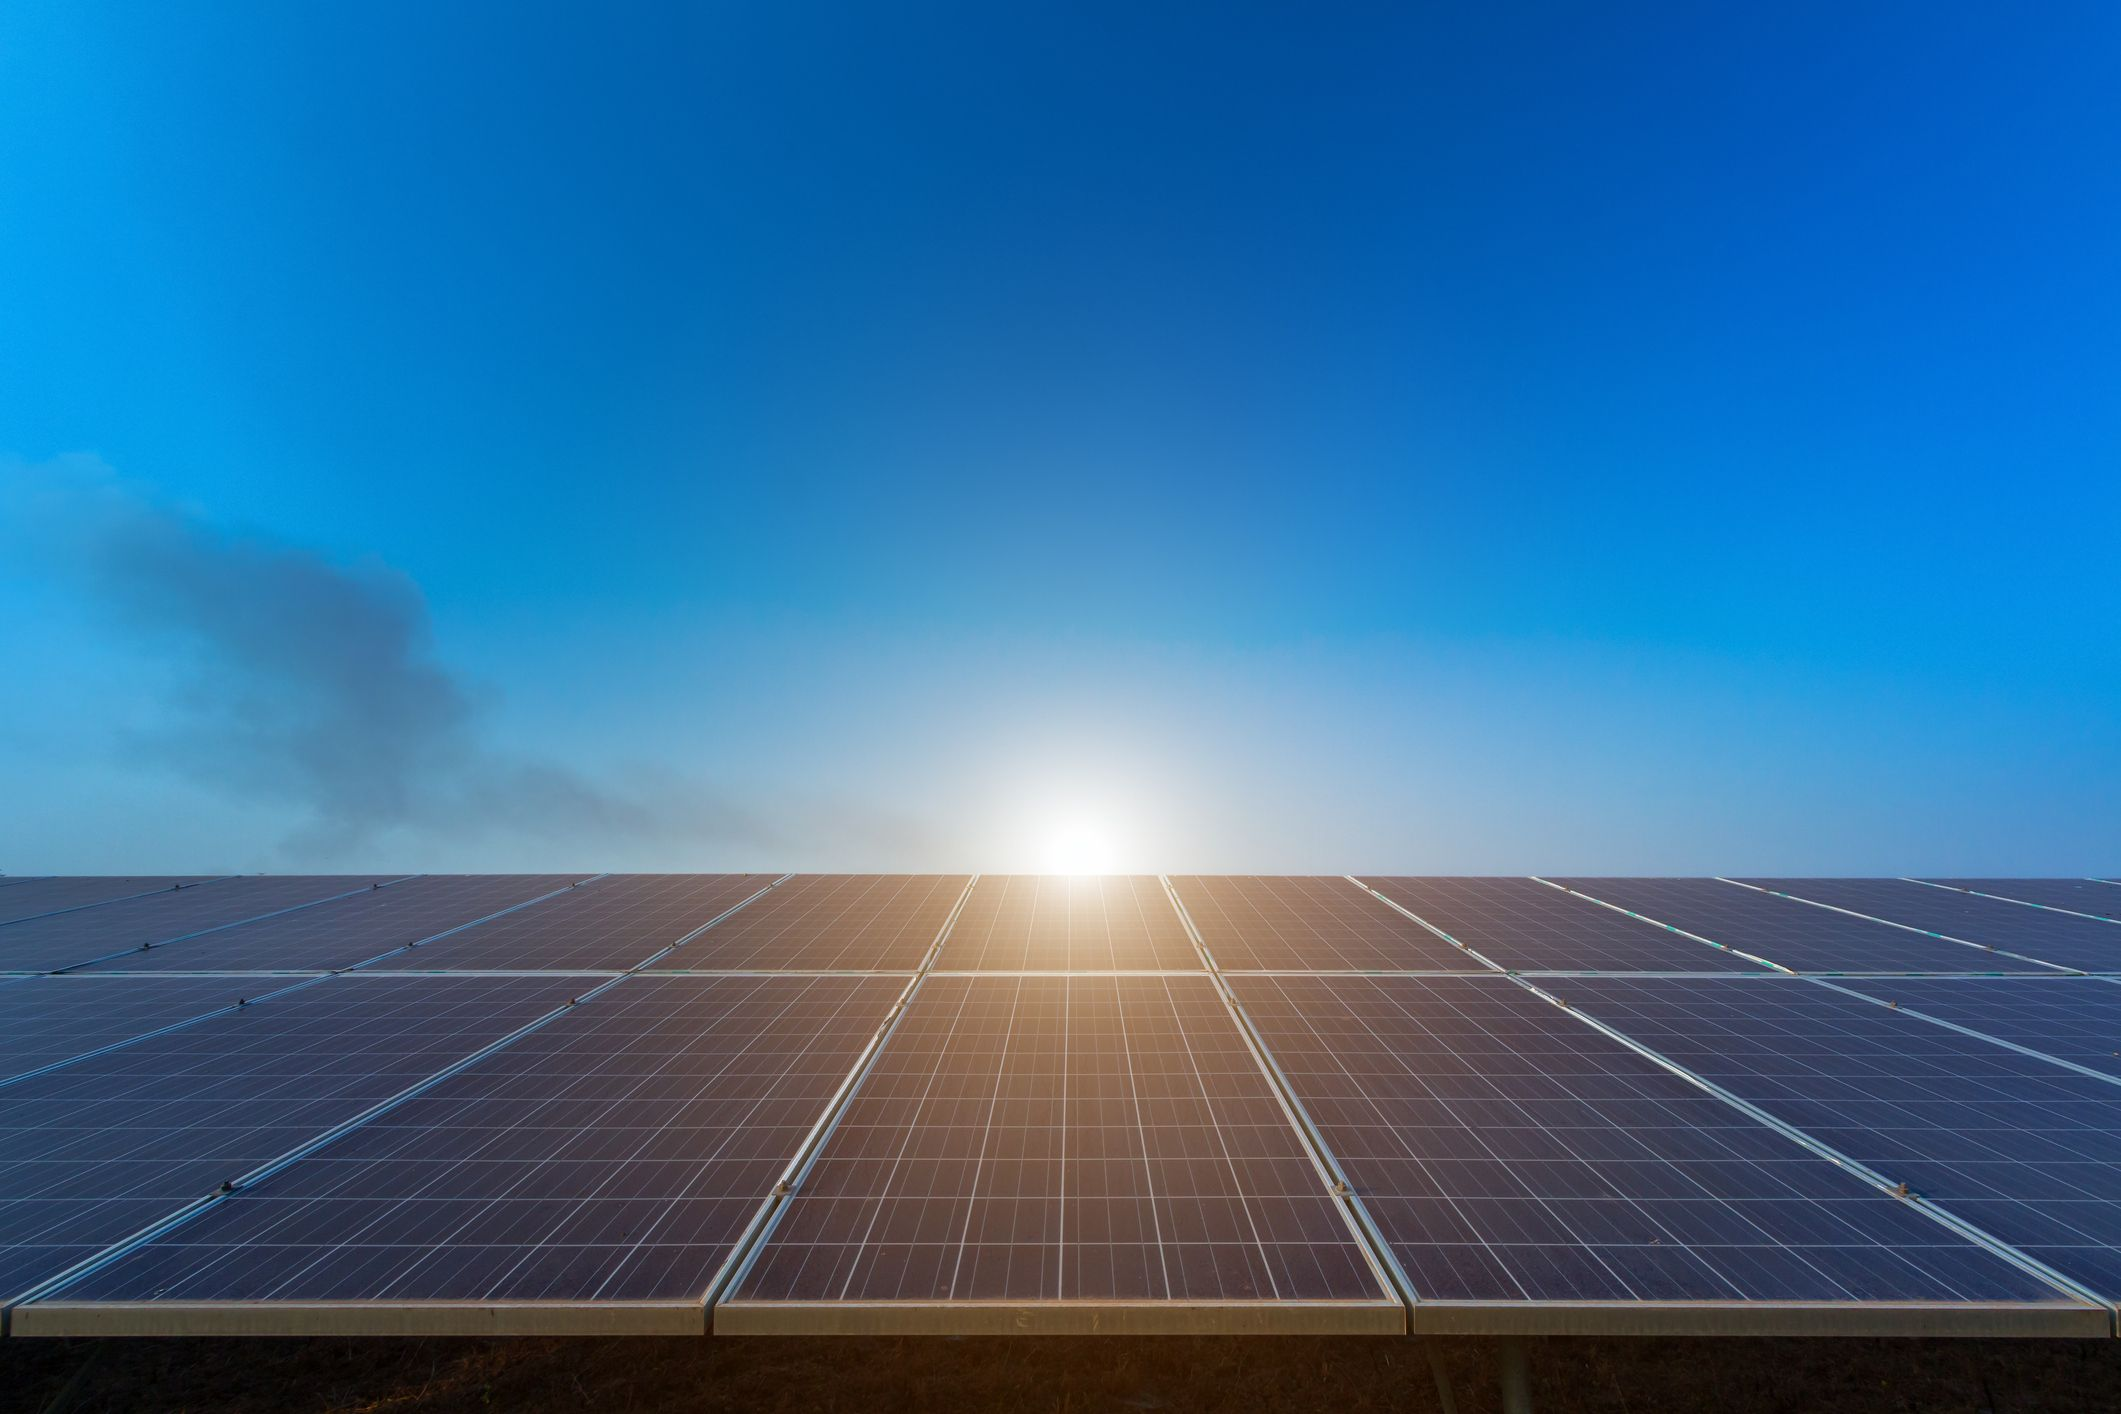 low-angle-view-of-solar-panels-against-sky-royalty-free-image-1587389153